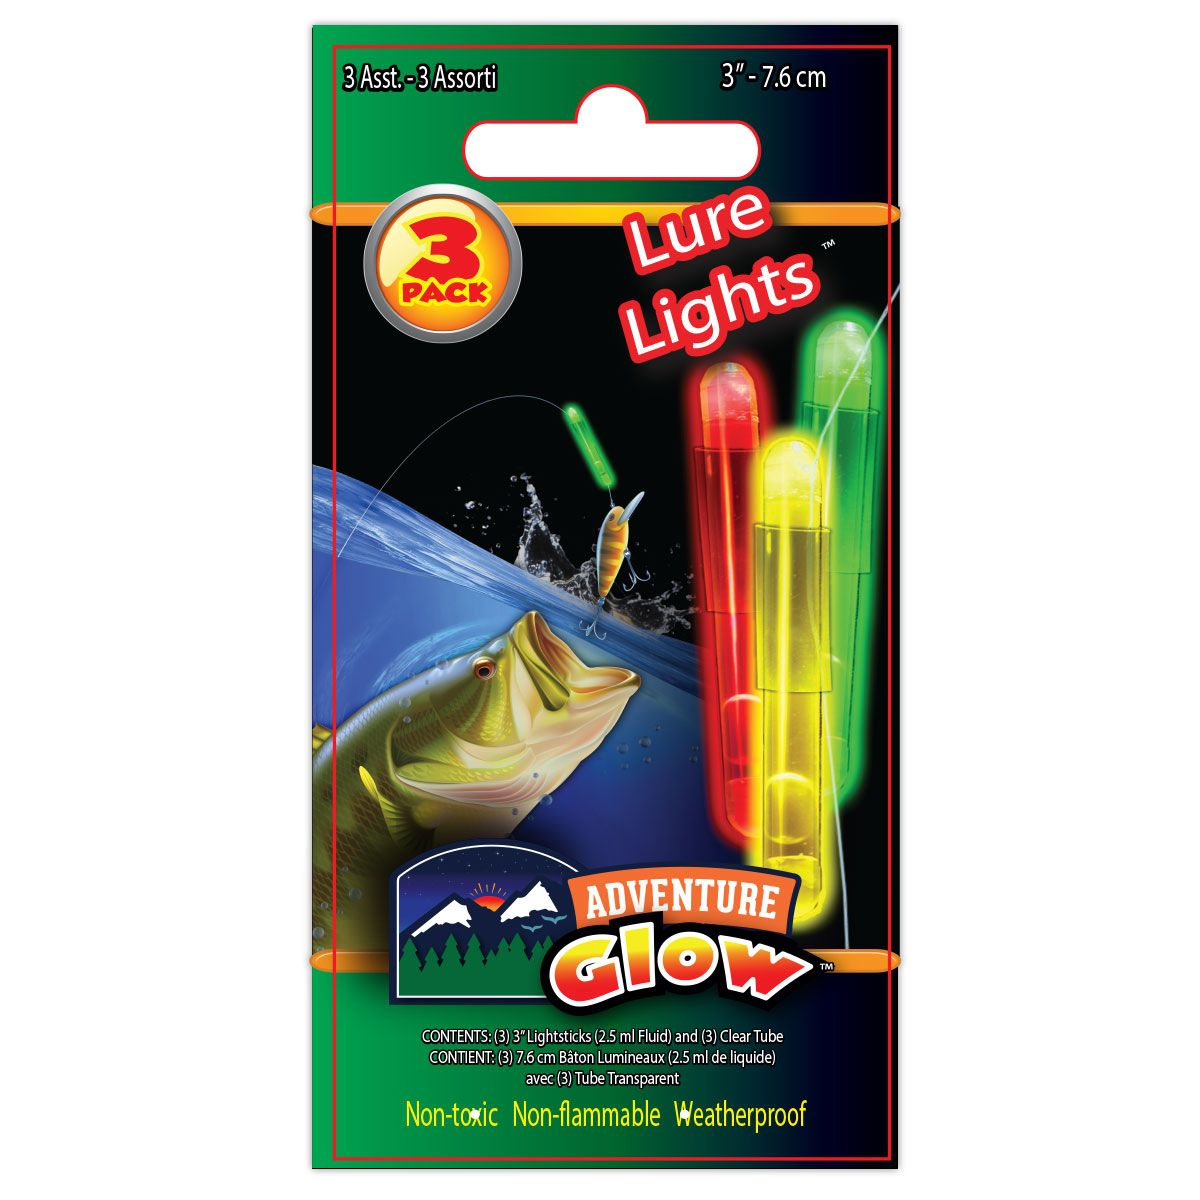 "3PK 3"" ASST'D LURE LIGHT"